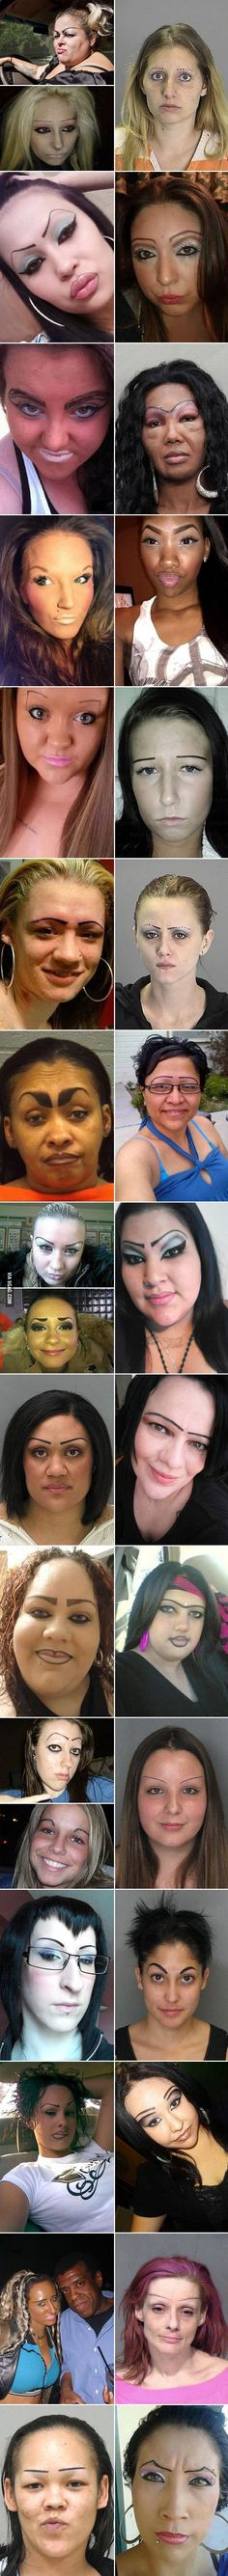 Drawn in eyebrows are so distracting even when you think you look good. Im sure these ladies thought they were on point but really they look like clowns.